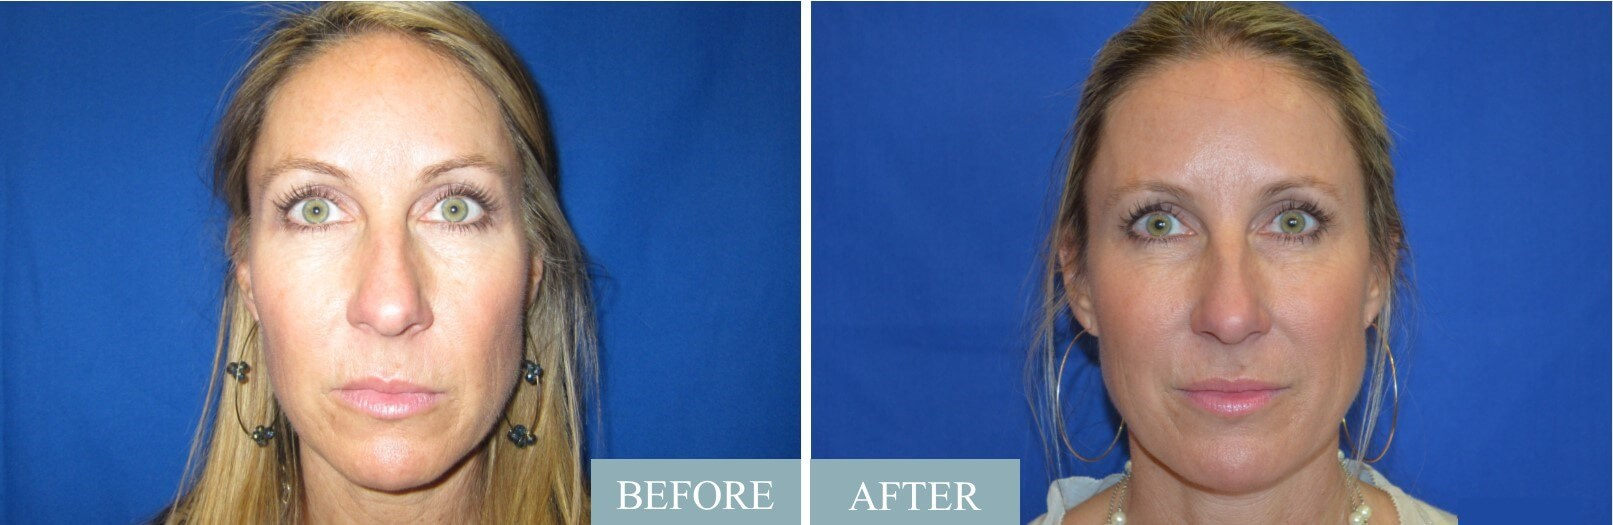 Sculptra Treatment Series After